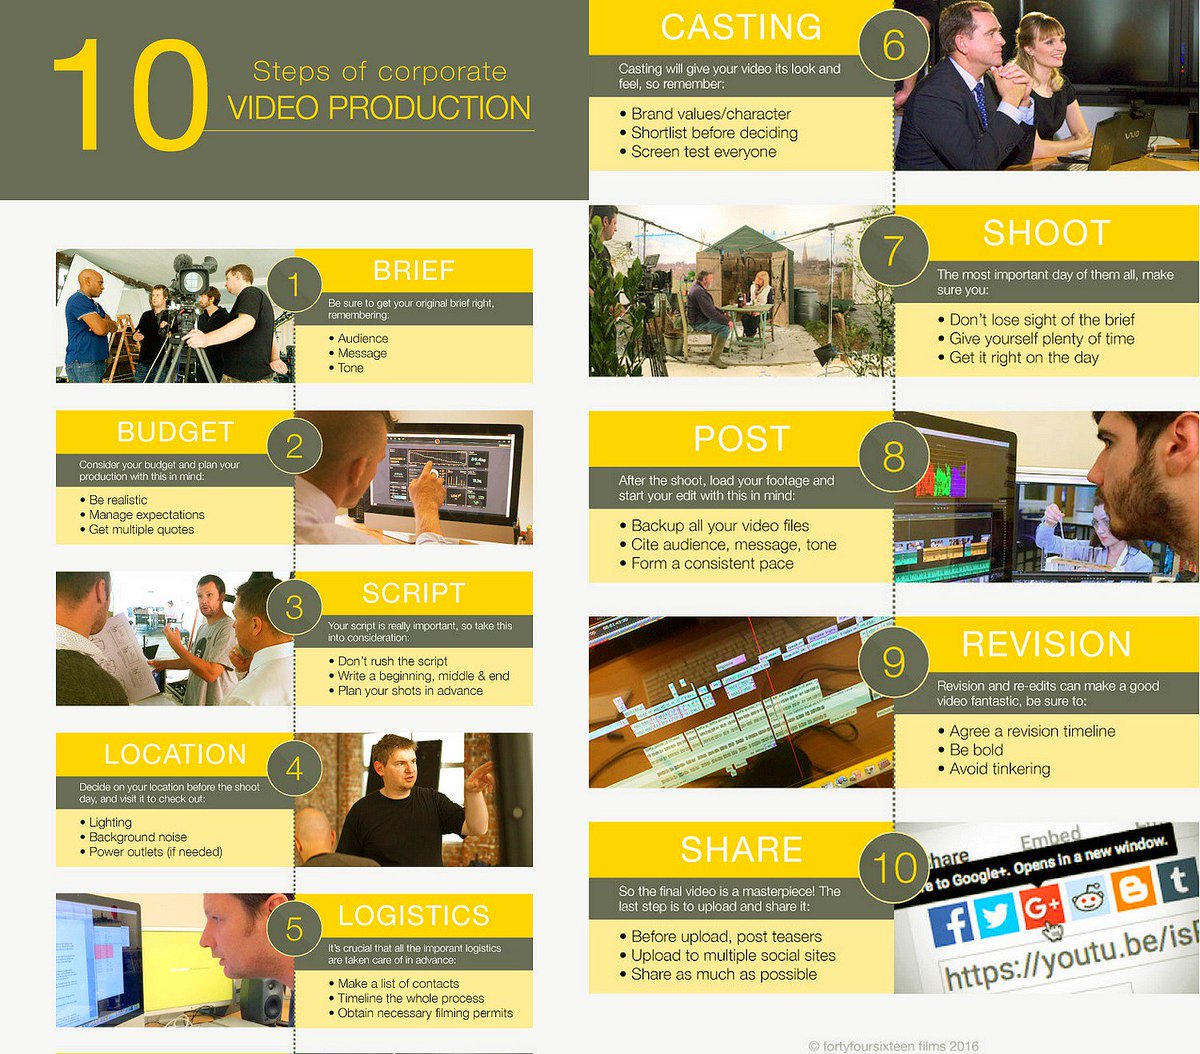 #VideoMarketing: The 10 Steps of Corporate Video Production  #ContentMarketing #GrowthHacking #DigitalMarketing<br>http://pic.twitter.com/GrZTjIRt6A